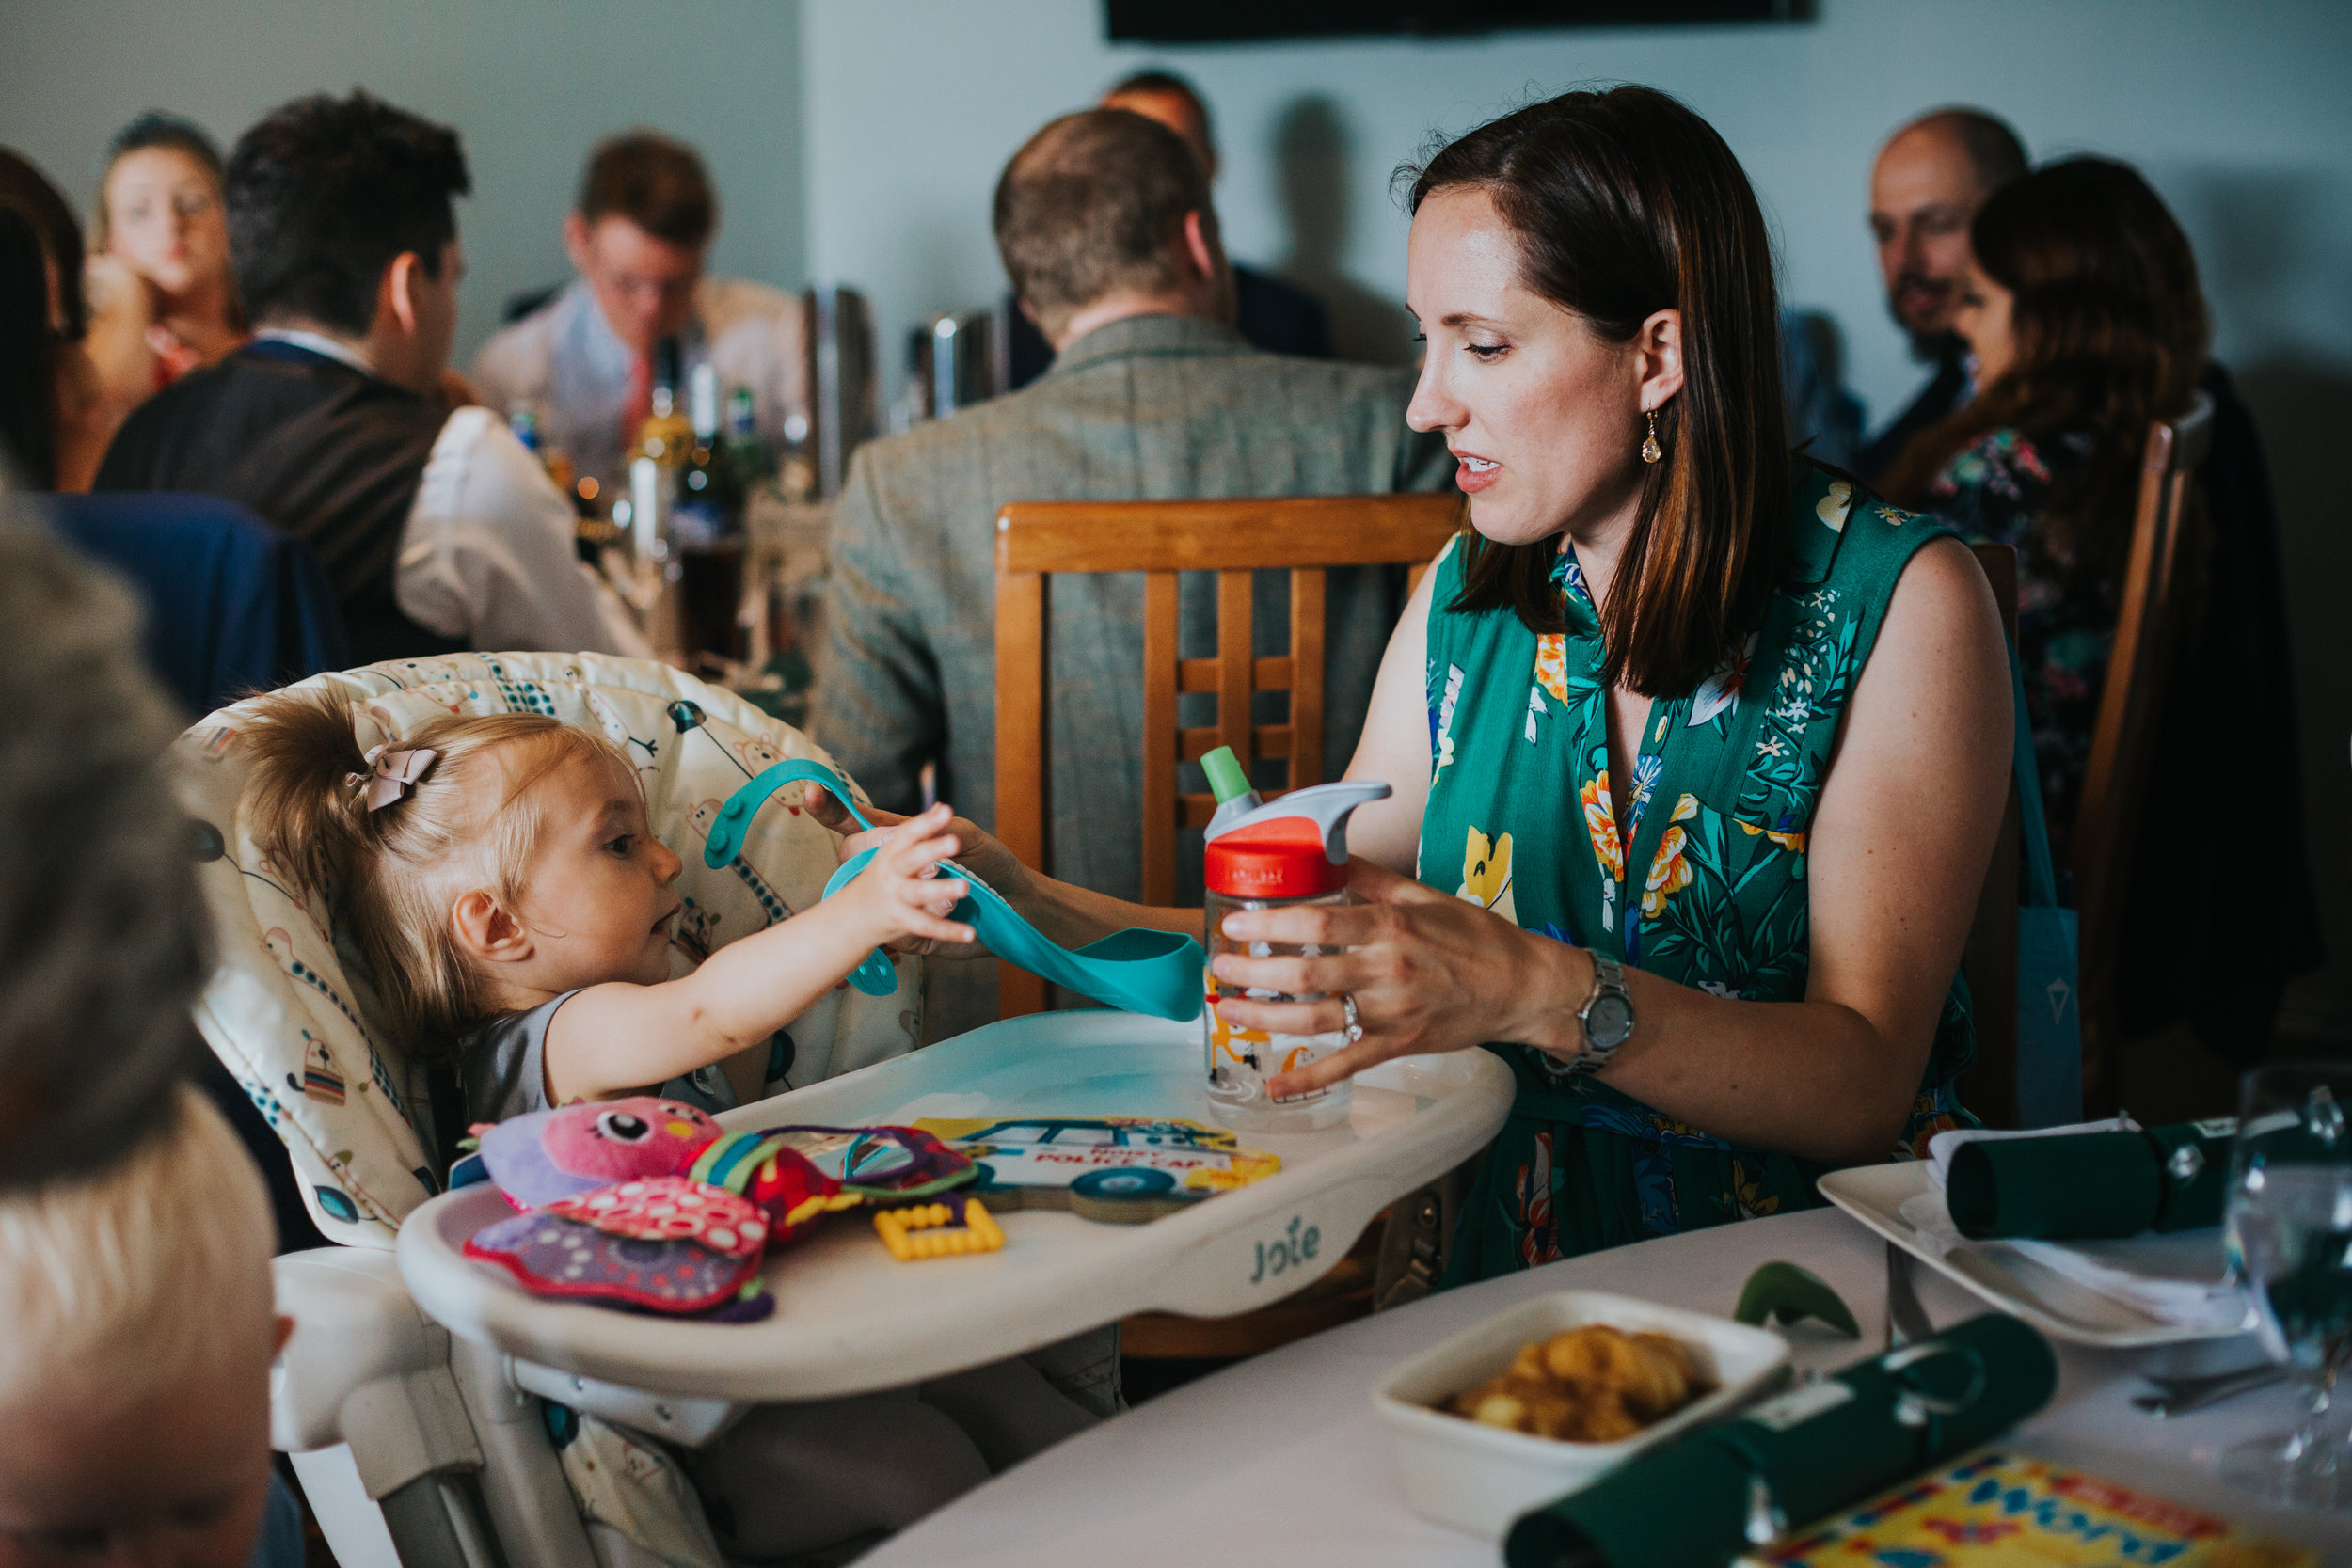 Wedding guest feeds her baby girl.